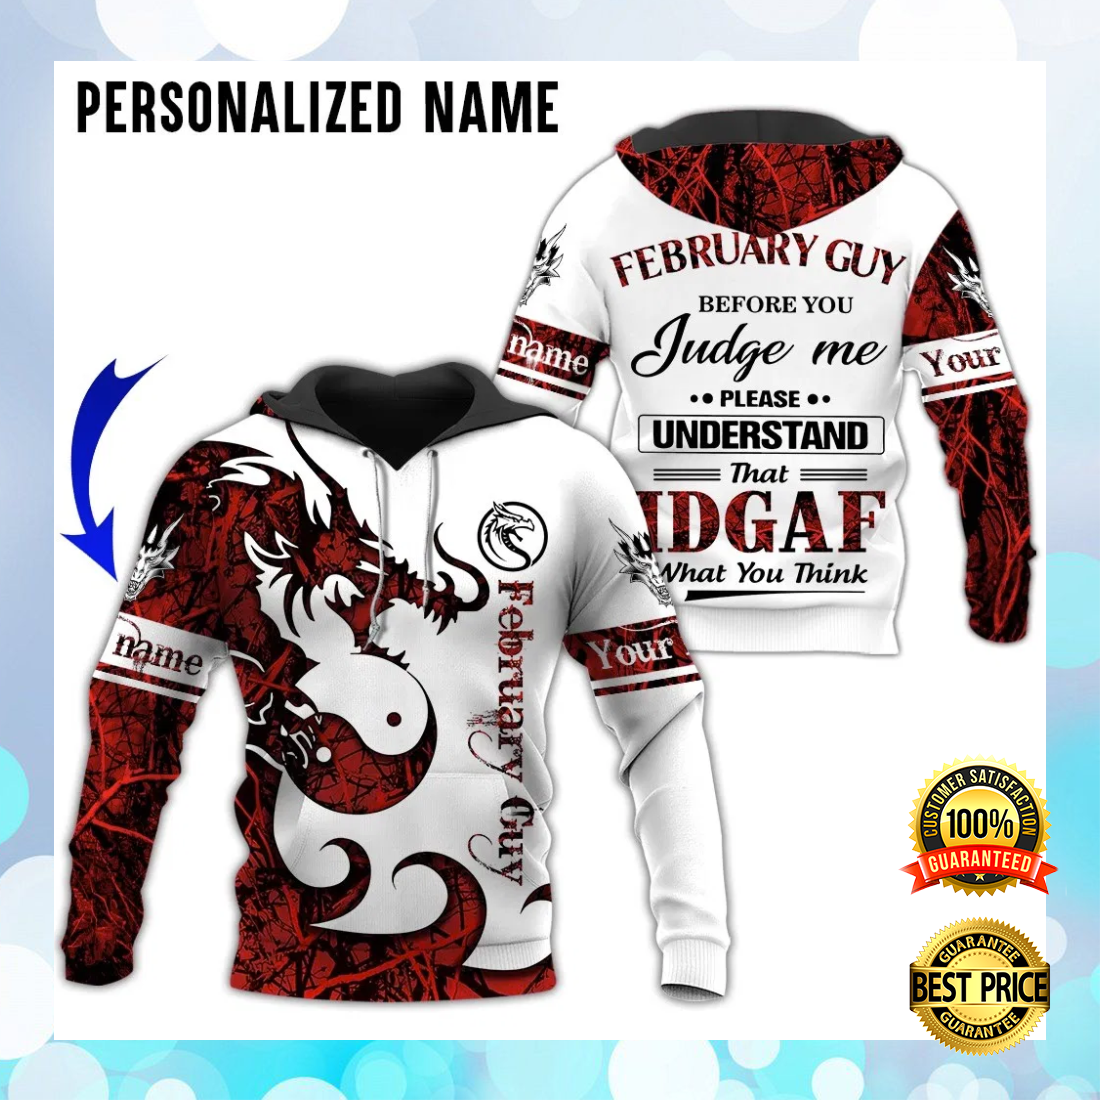 PERSONALIZED DRAGON FEBRUARY GUY ALL OVER PRINTED 3D HOODIE 5